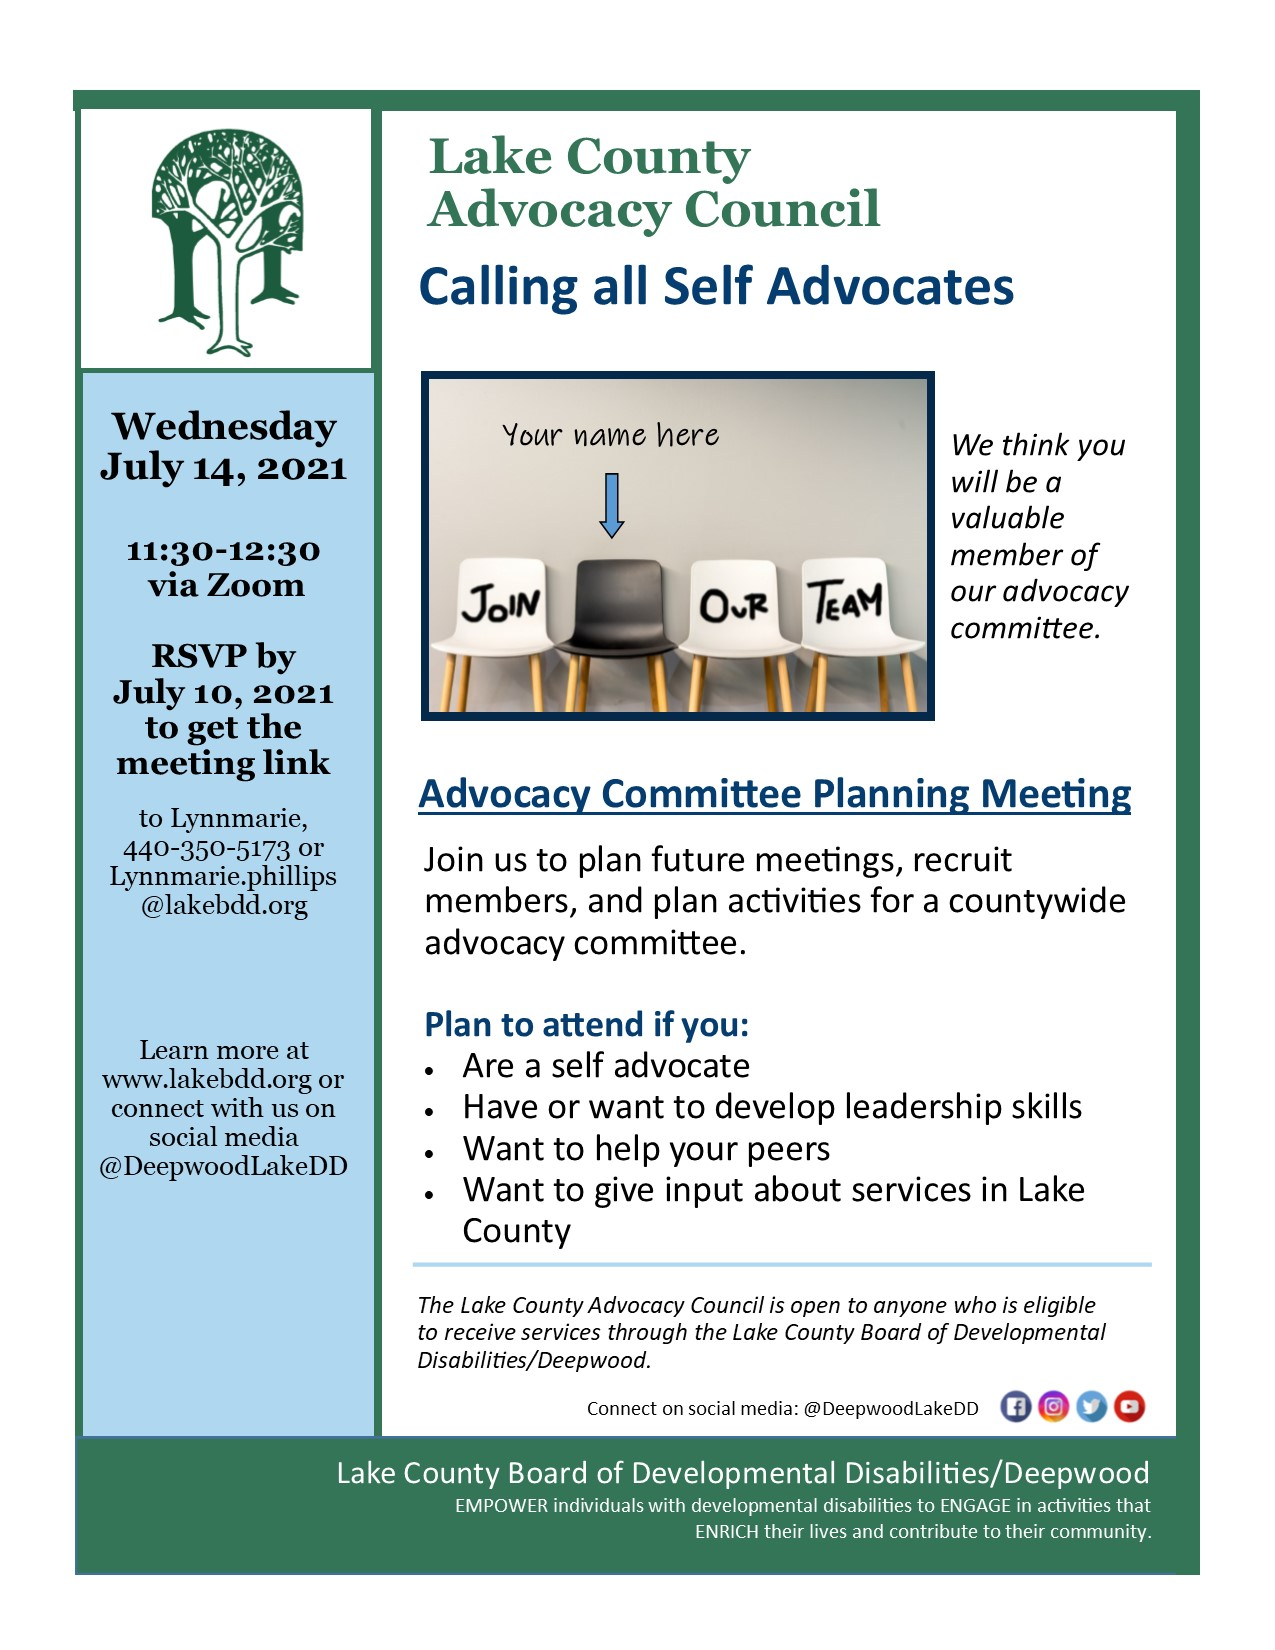 Advocacy Committee Planning Meeting